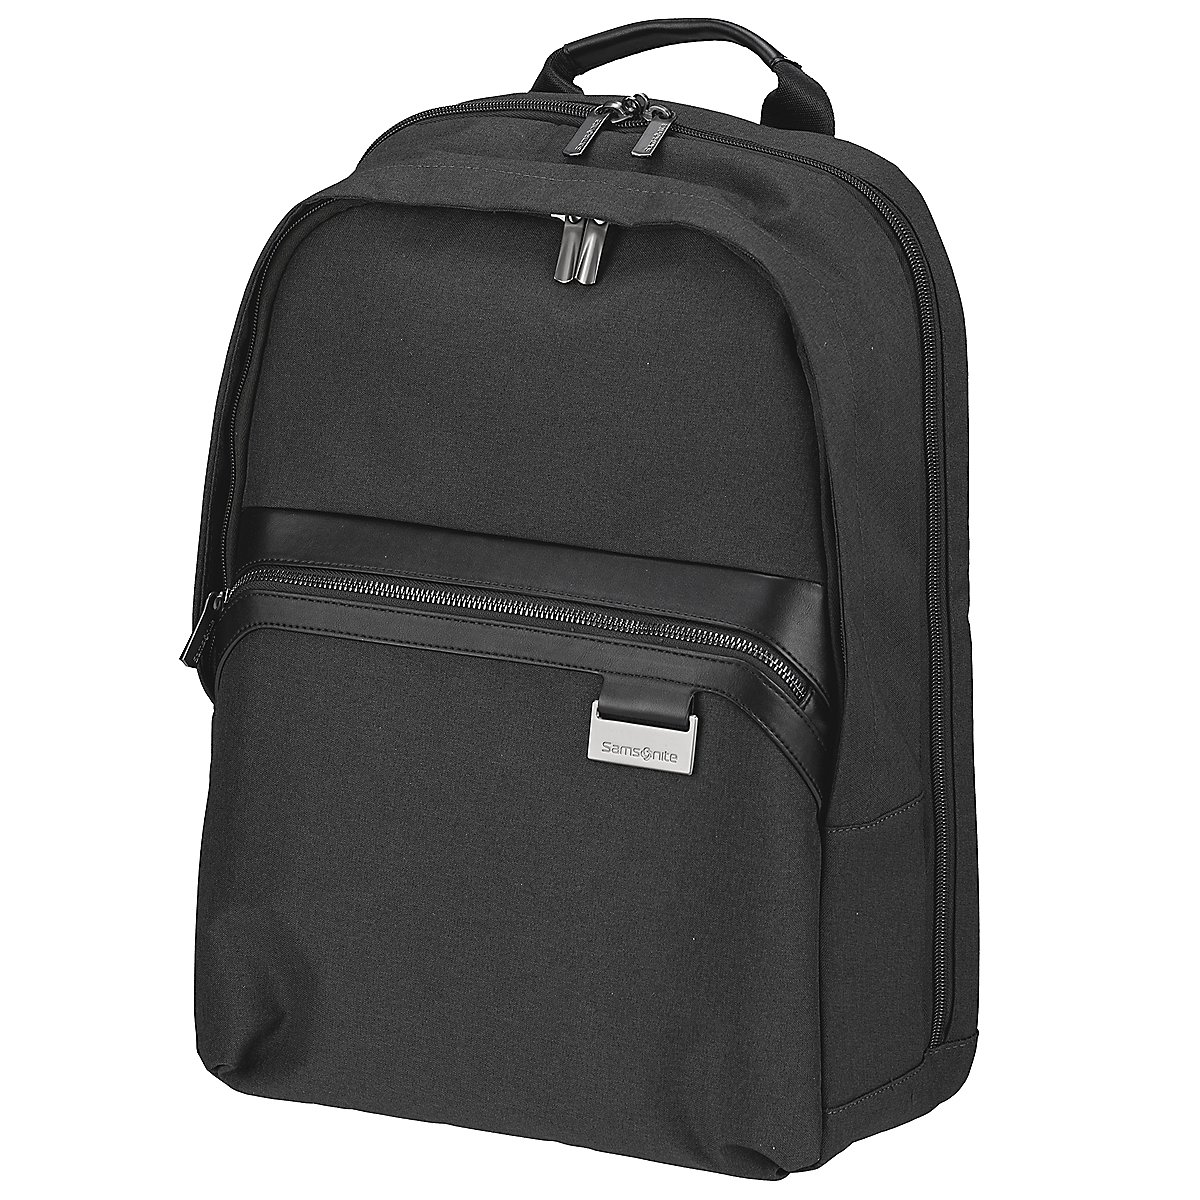 samsonite upstream backpack rucksack mit laptopfach 44 cm. Black Bedroom Furniture Sets. Home Design Ideas